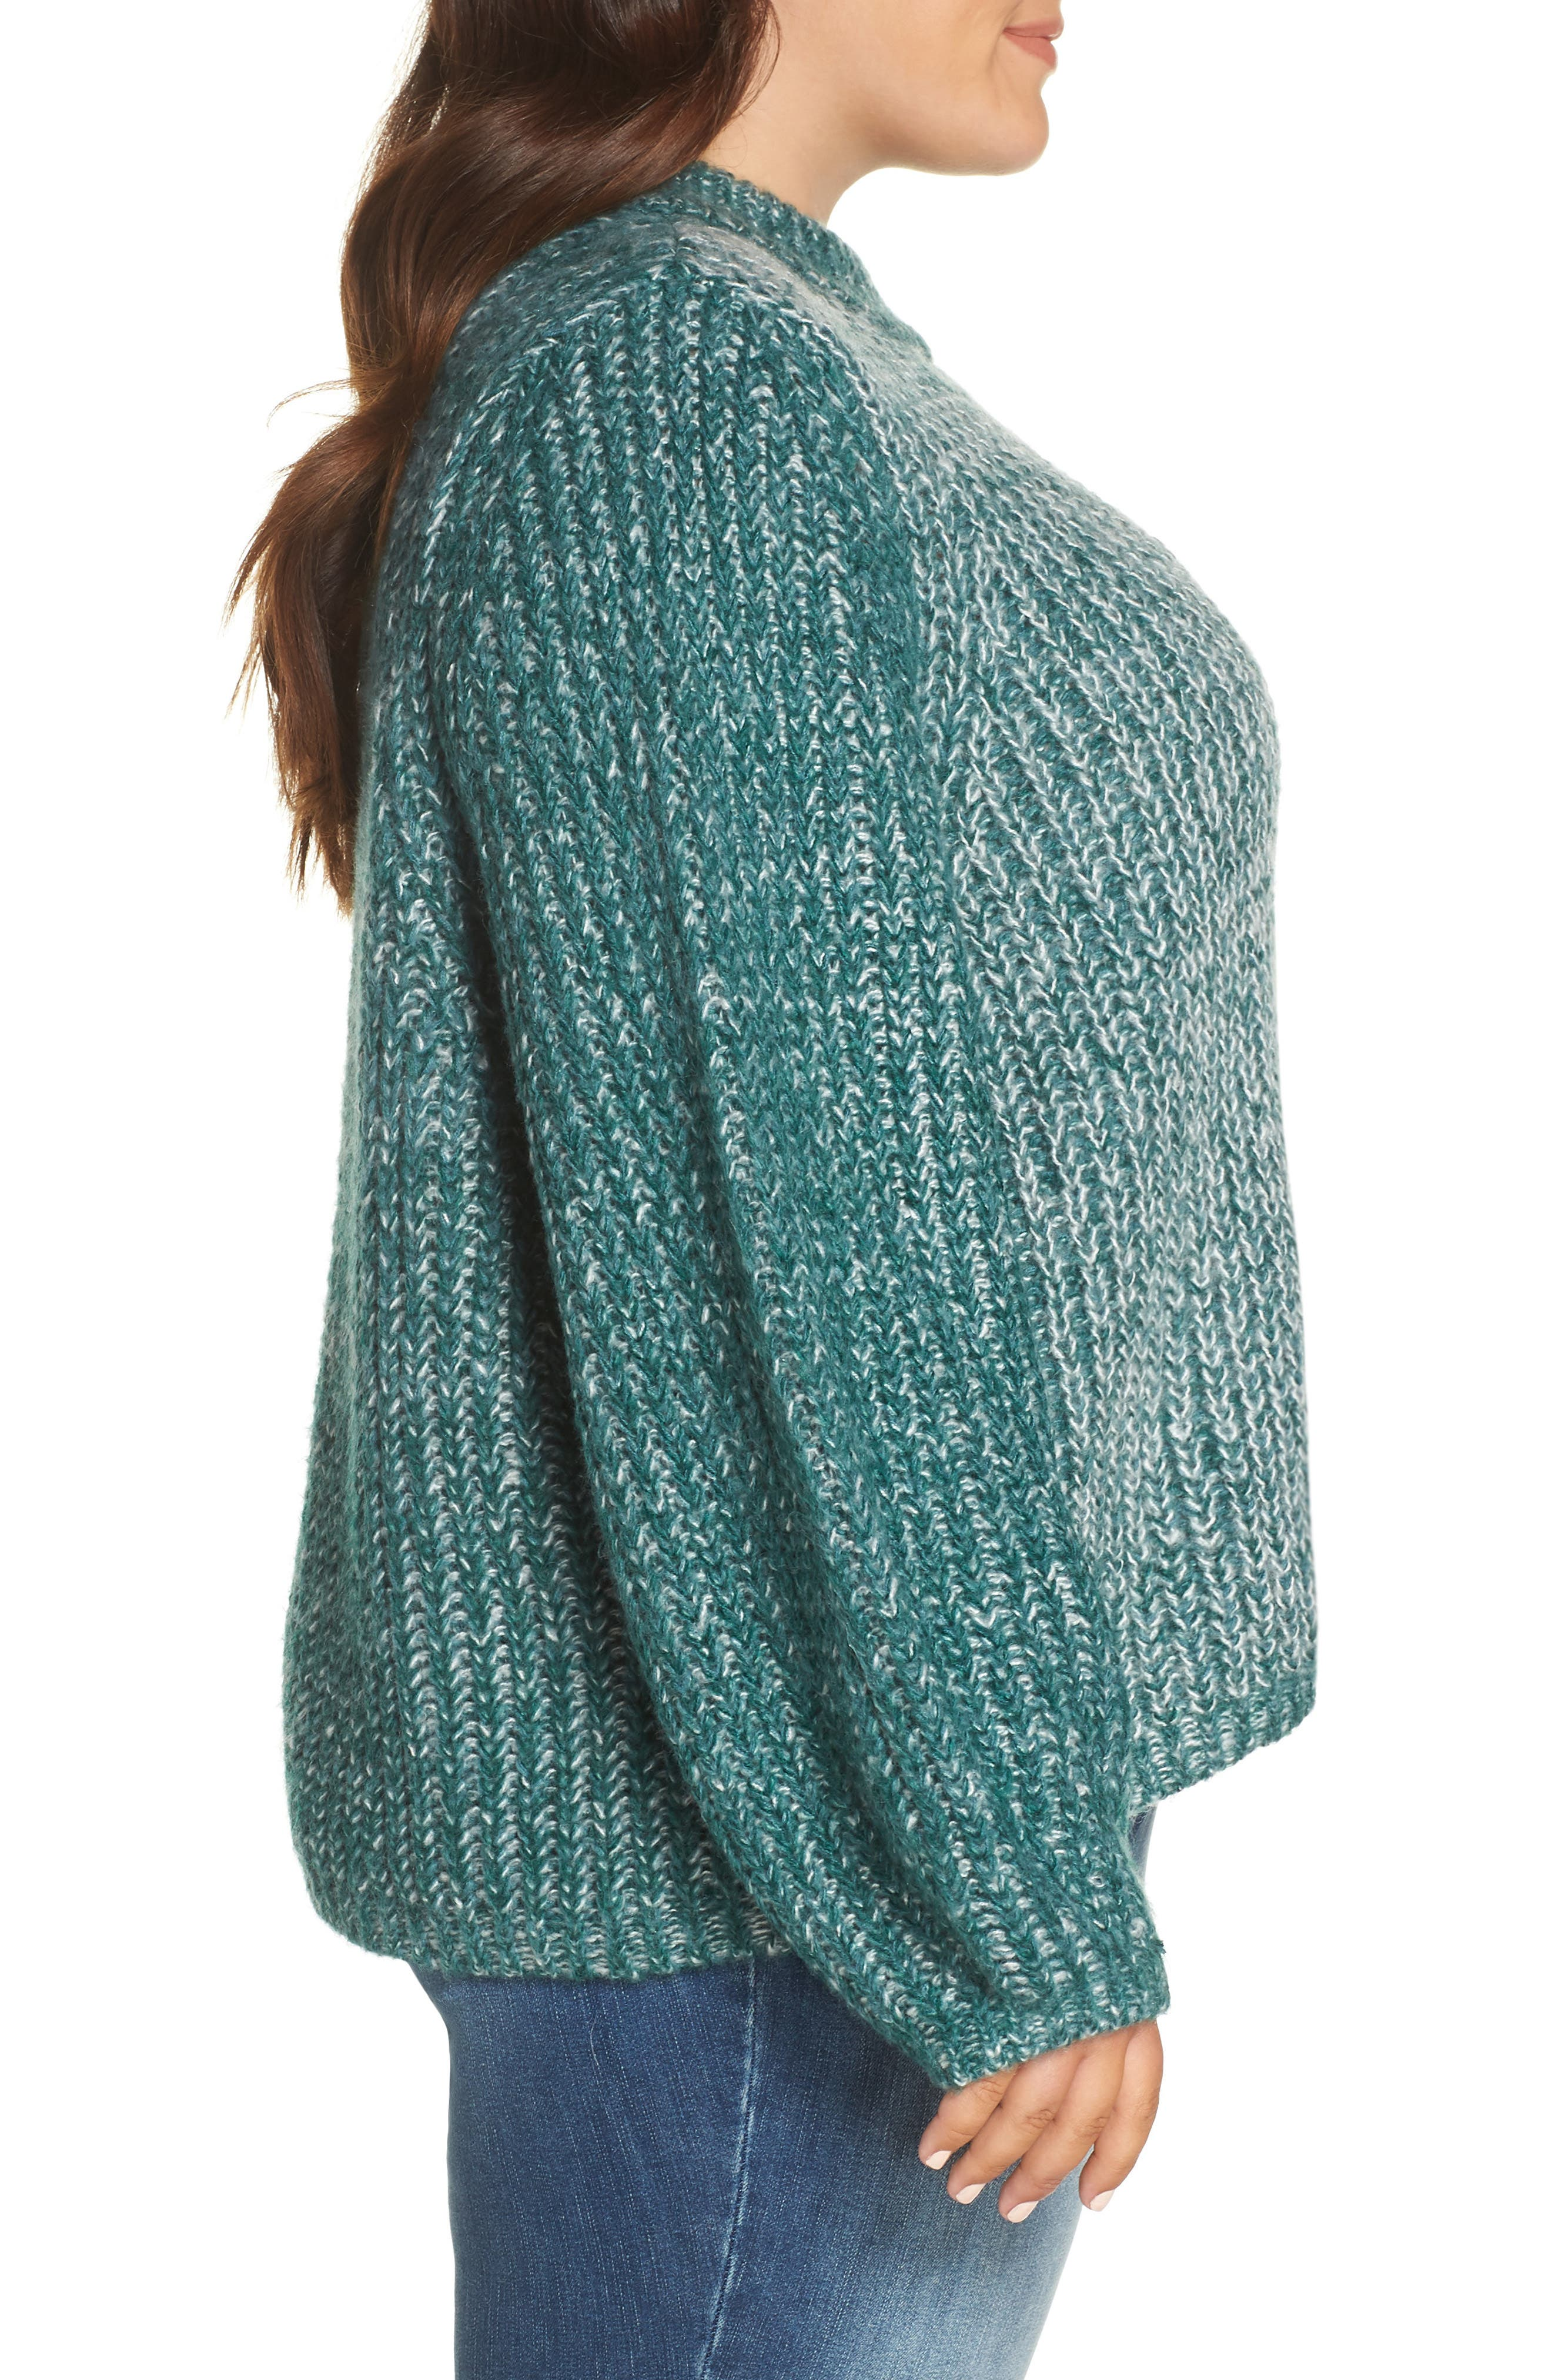 Marl Knit Sweater,                             Alternate thumbnail 3, color,                             TEAL HYDRO